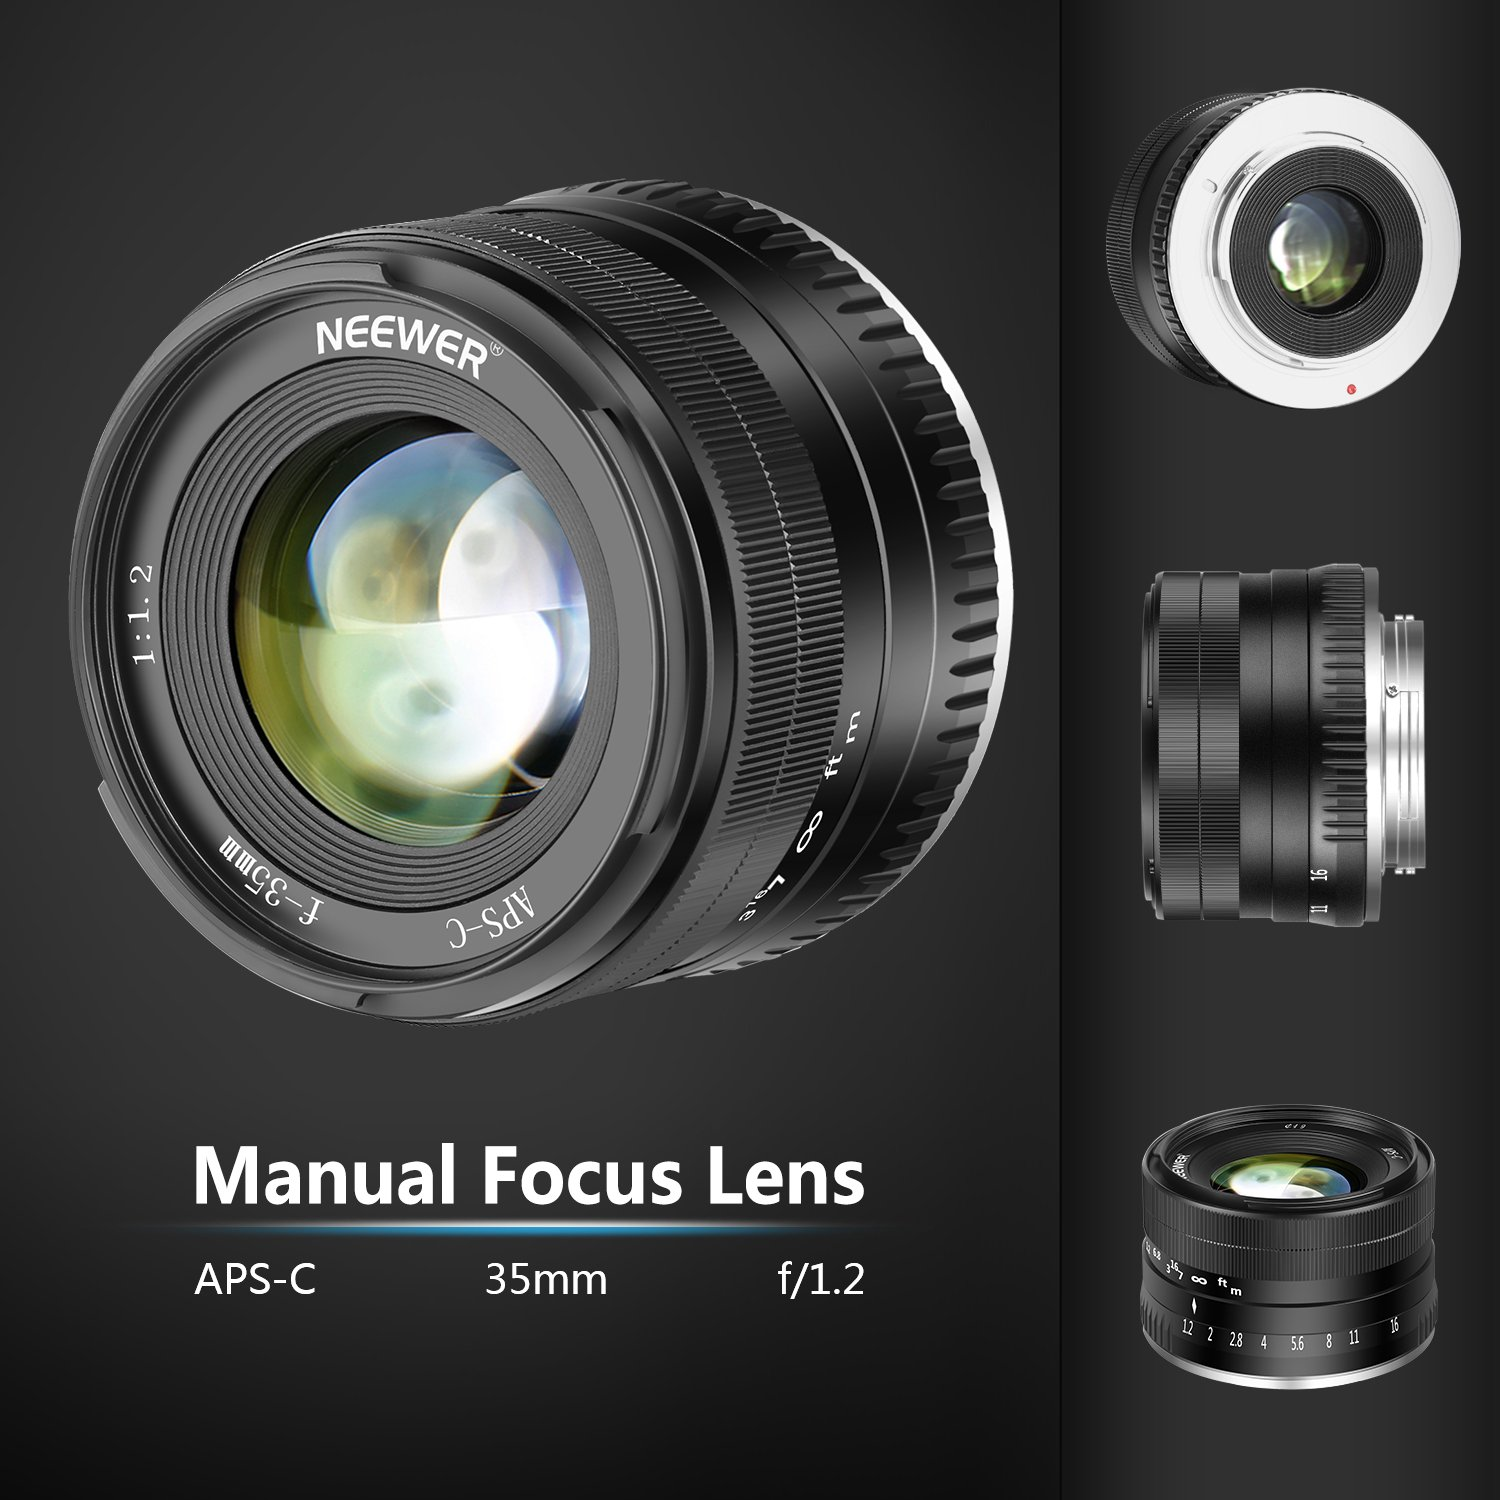 Neewer 35mm F12 Large Aperture Prime Aps C Aluminum Lens Compatible Fujifilm X T2 Body Only Xf 56mm With Fuji Mount Mirrorless Cameras A1 A10 A2 A3 At M1 M2 T1 T10